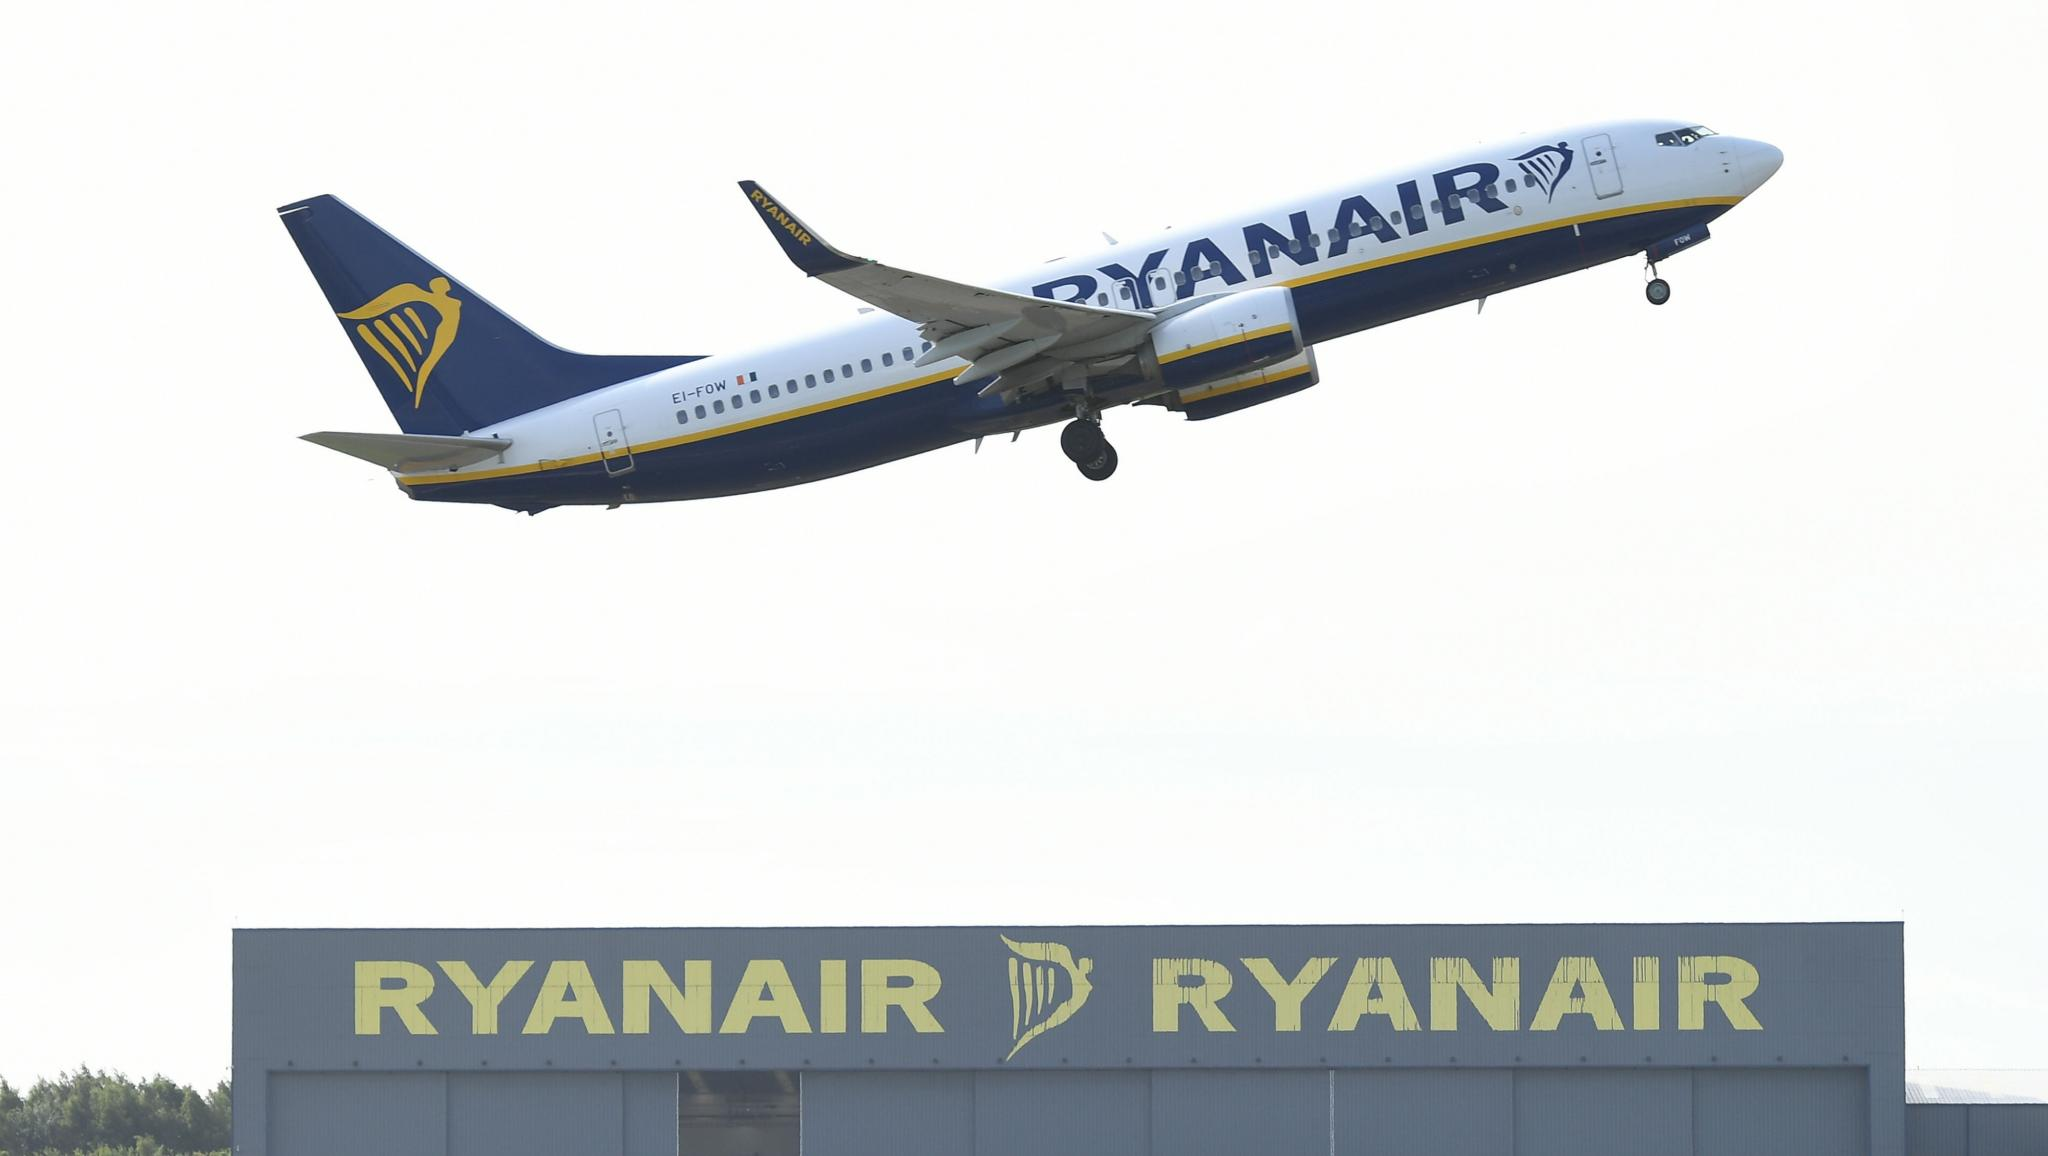 Ryanair Says Three Boeing 737NGs Planes Grounded by Cracks